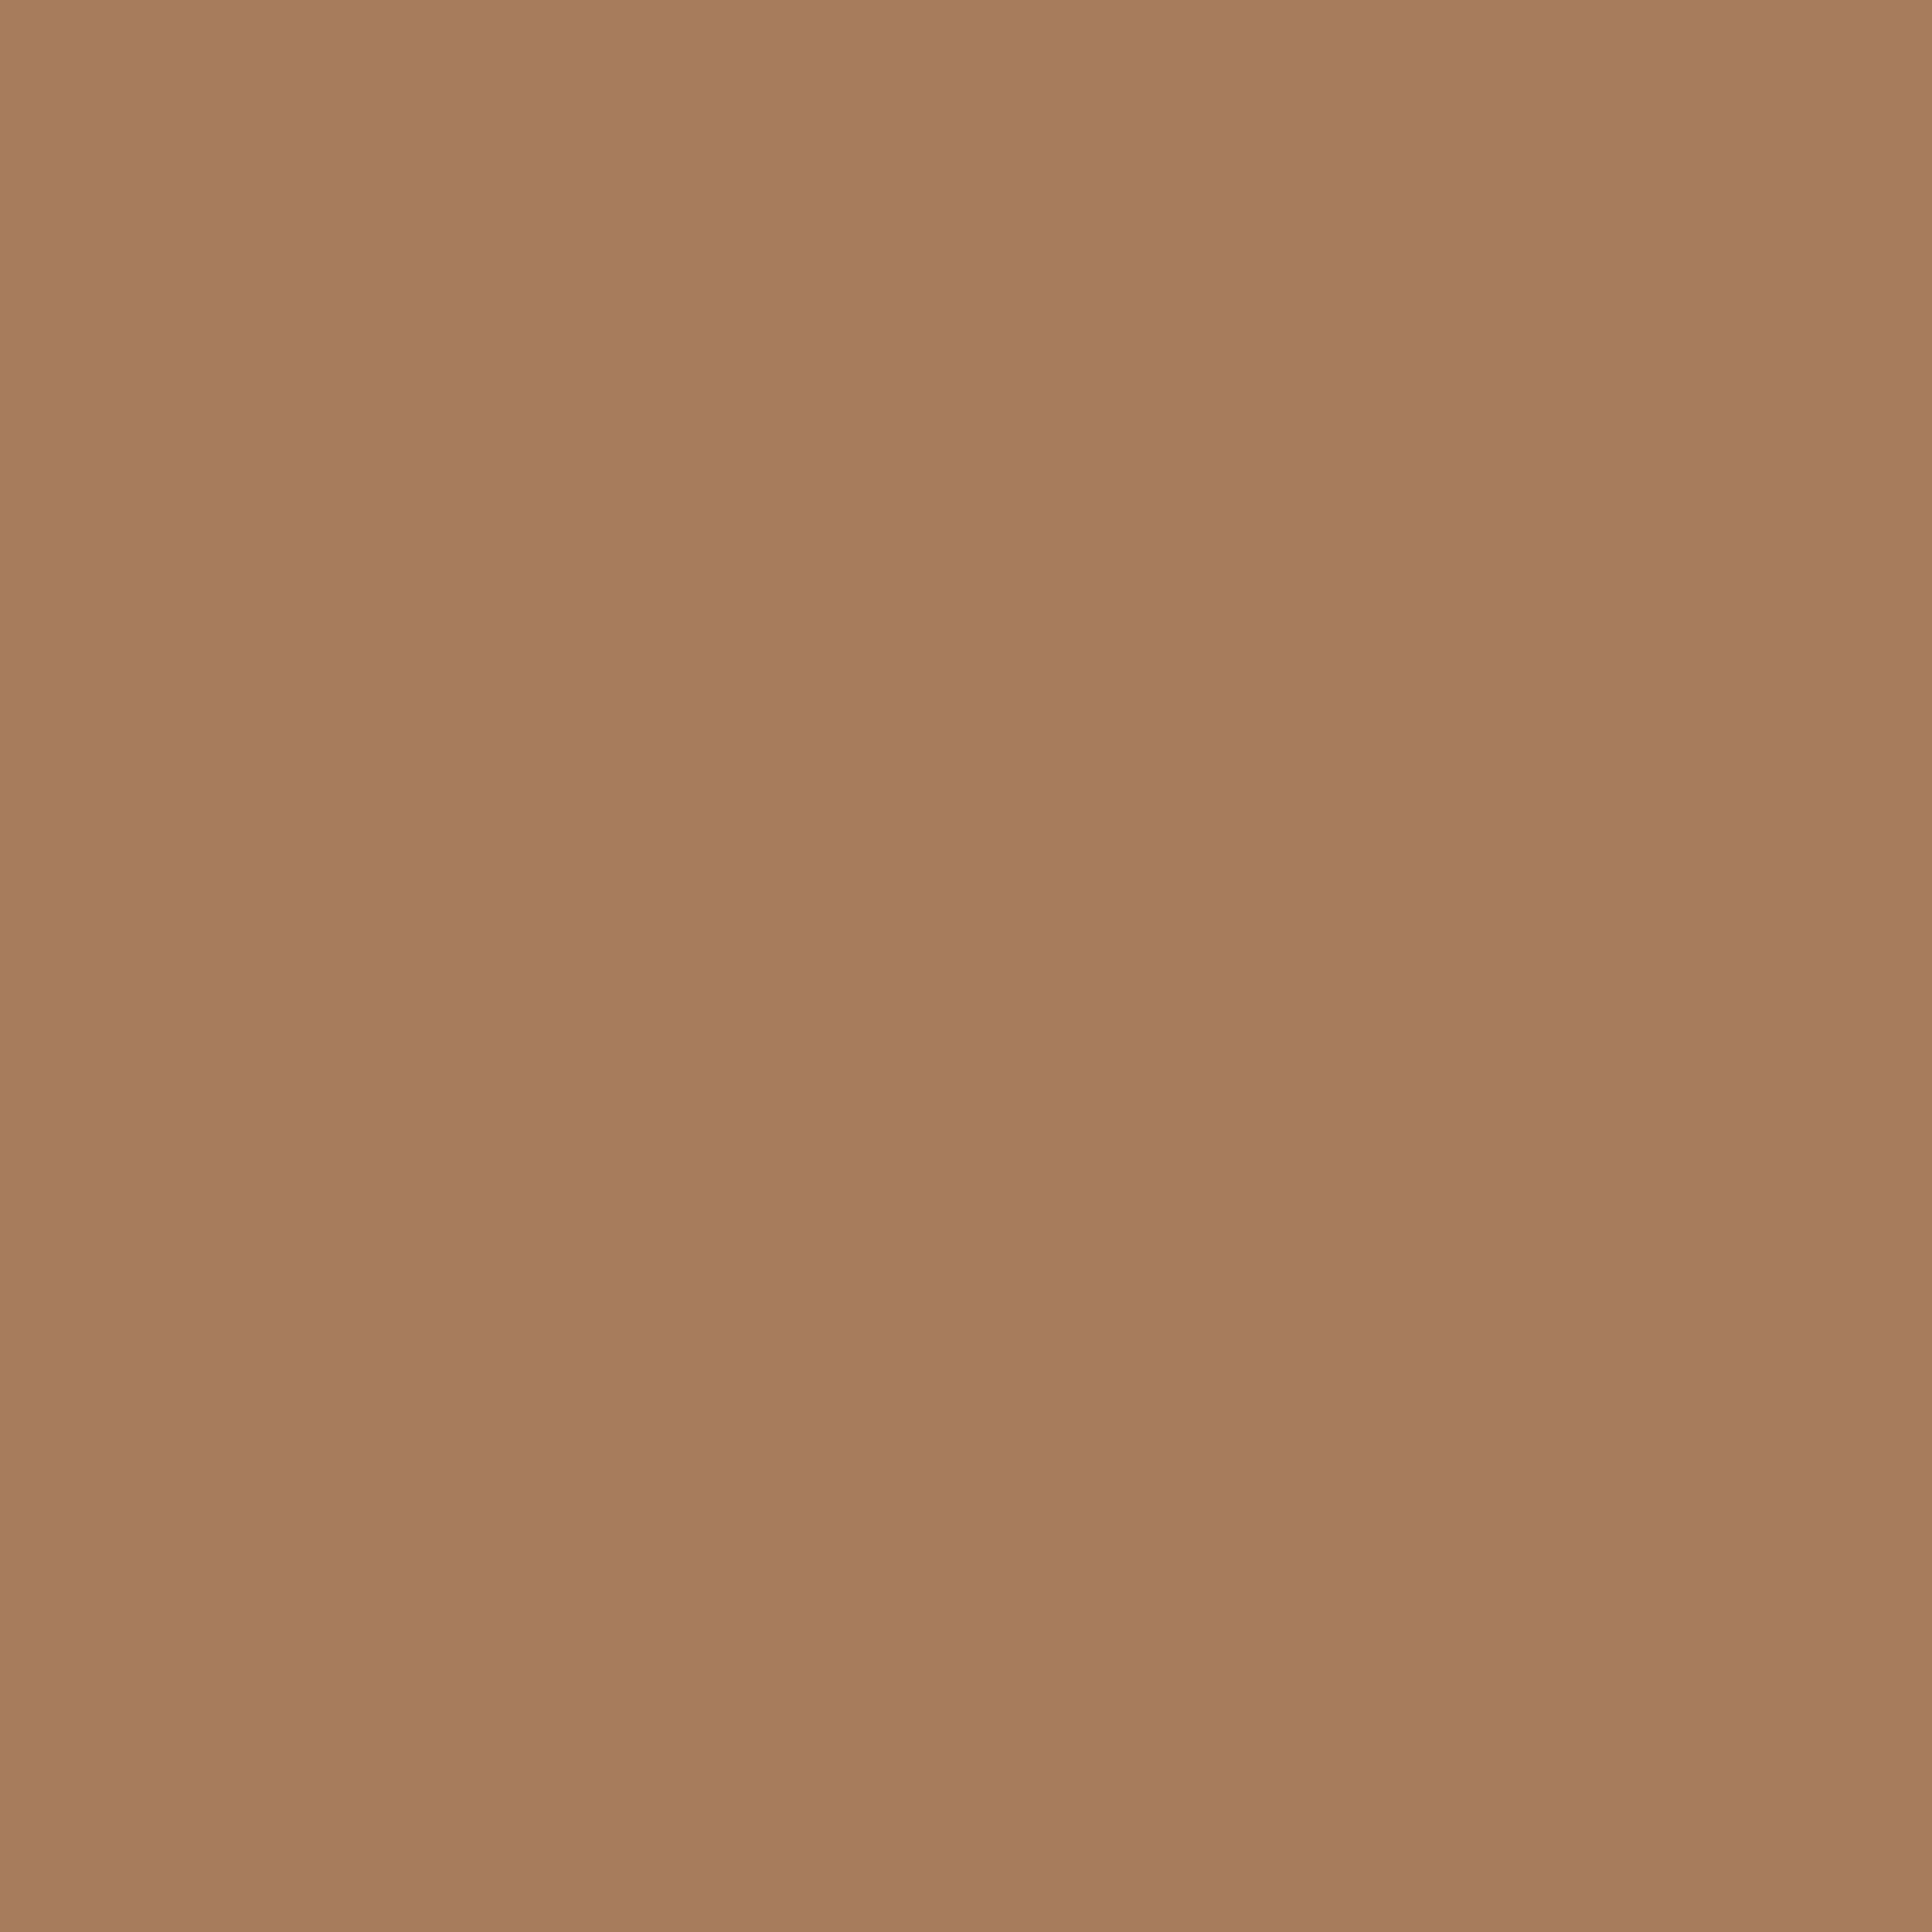 2732x2732 Tuscan Tan Solid Color Background